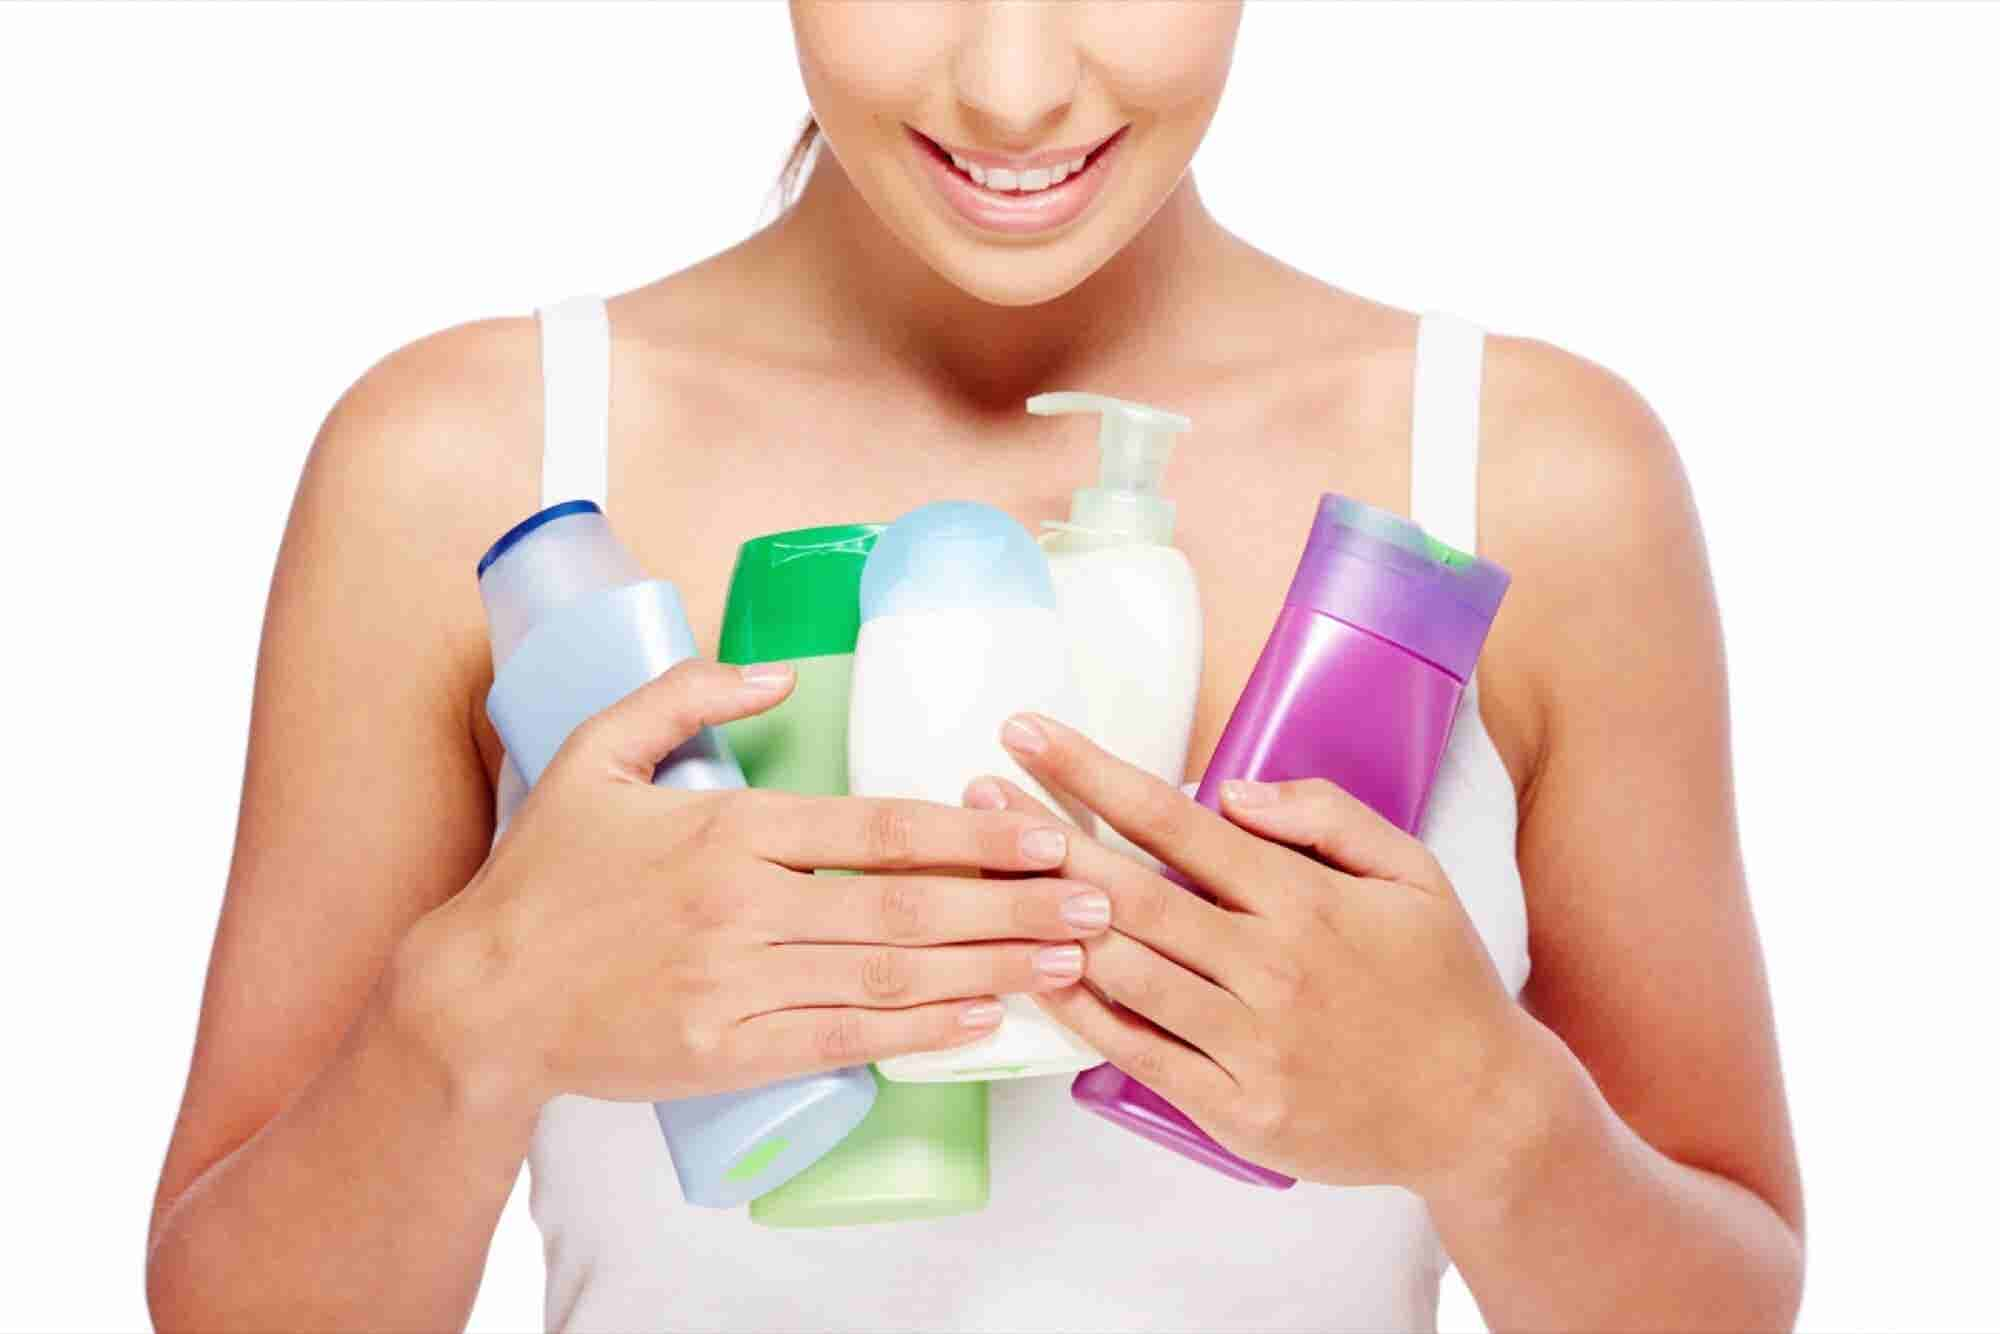 Upcoming Trends in the Beauty And Wellness Industry